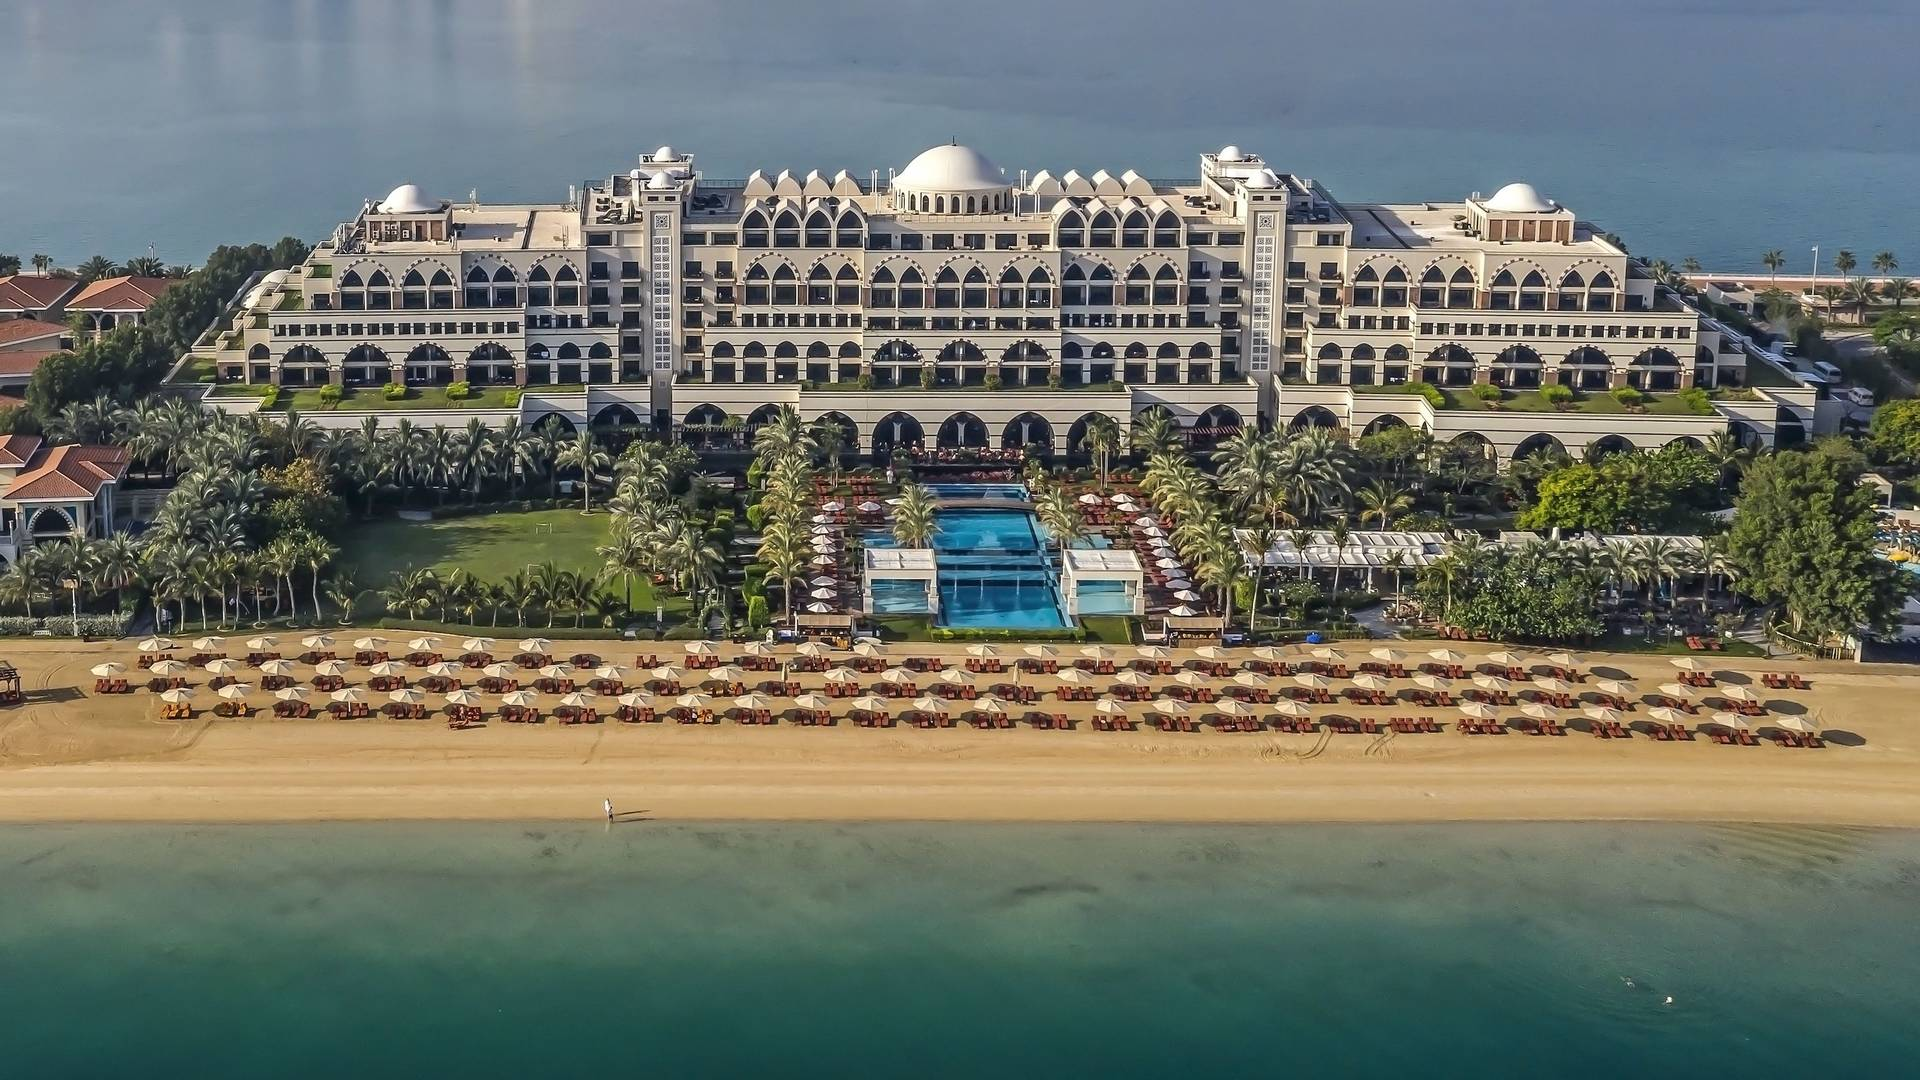 Exterior of Jumeirah Zabeel Saray